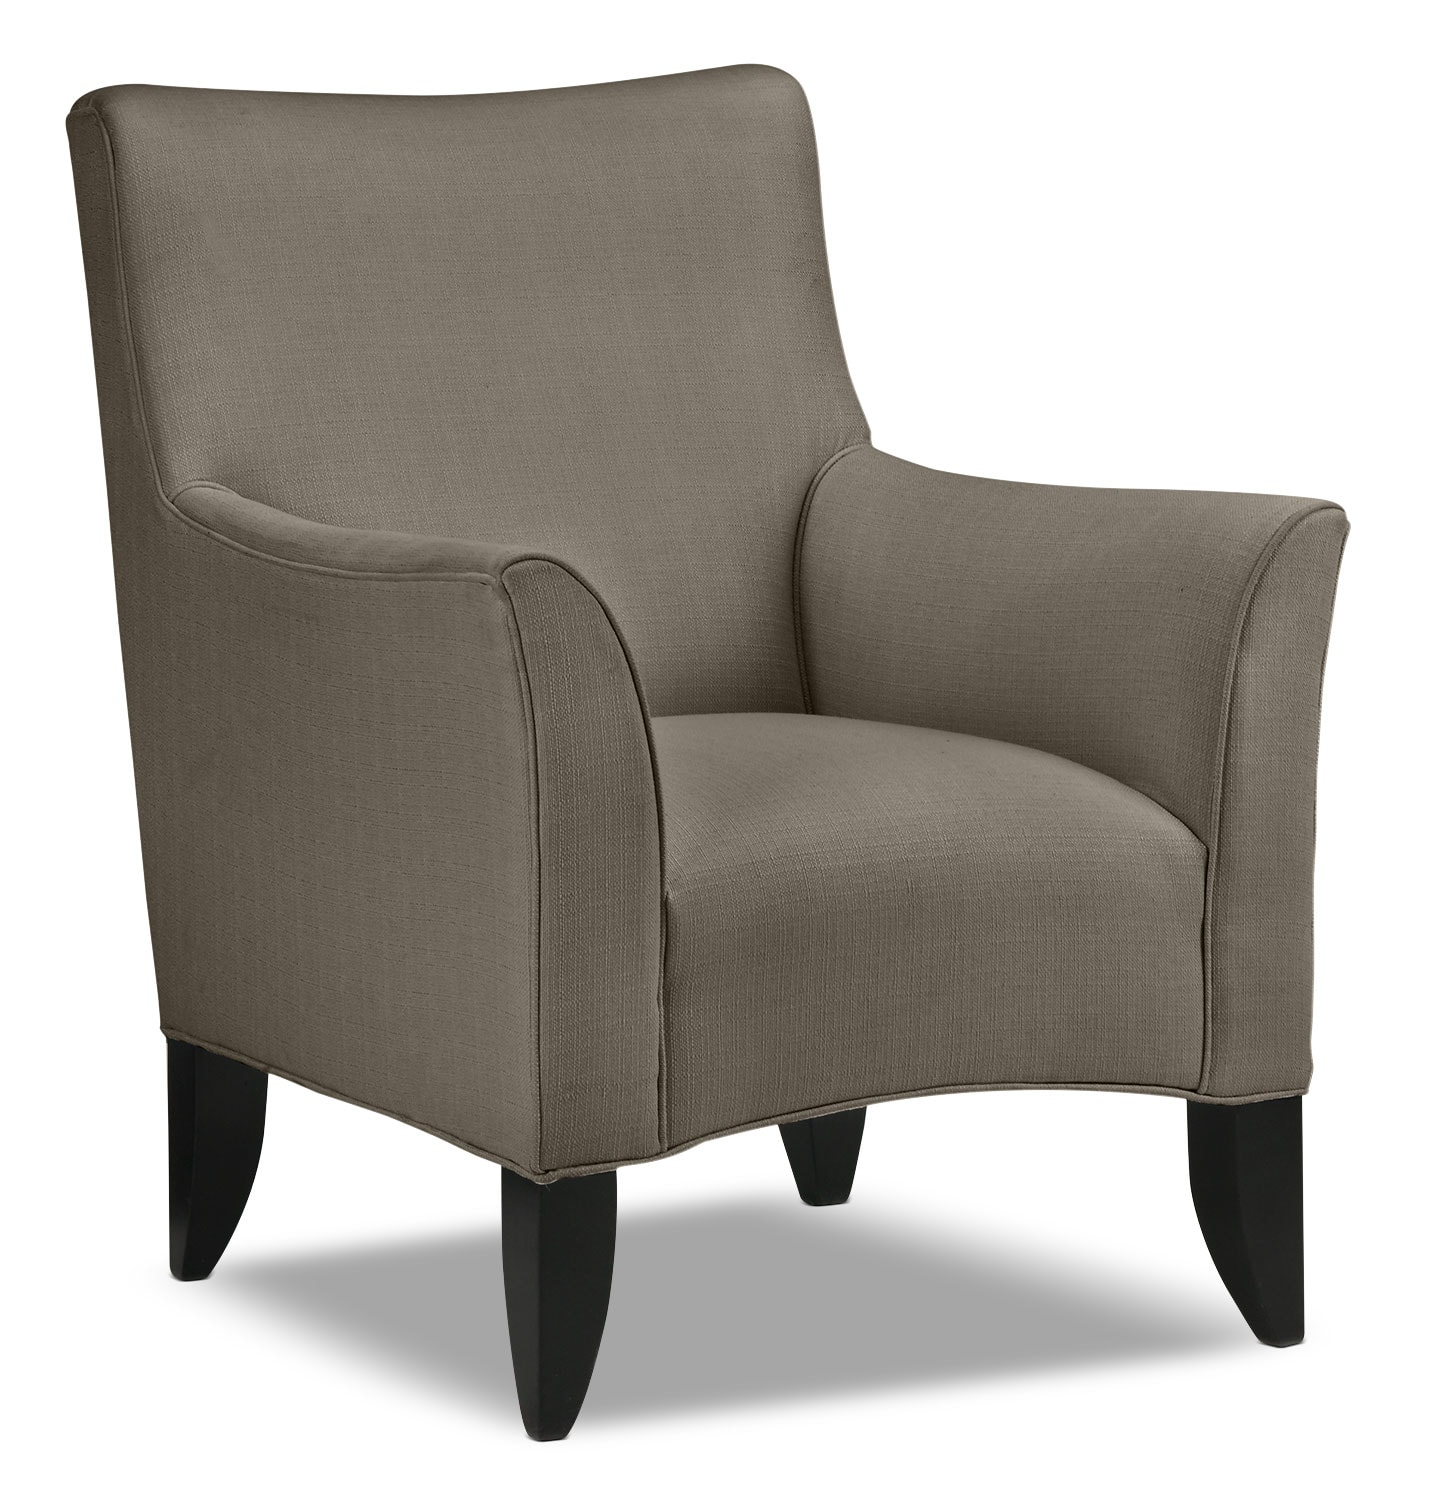 Klein accent chair grey leon 39 s for Accent furniture